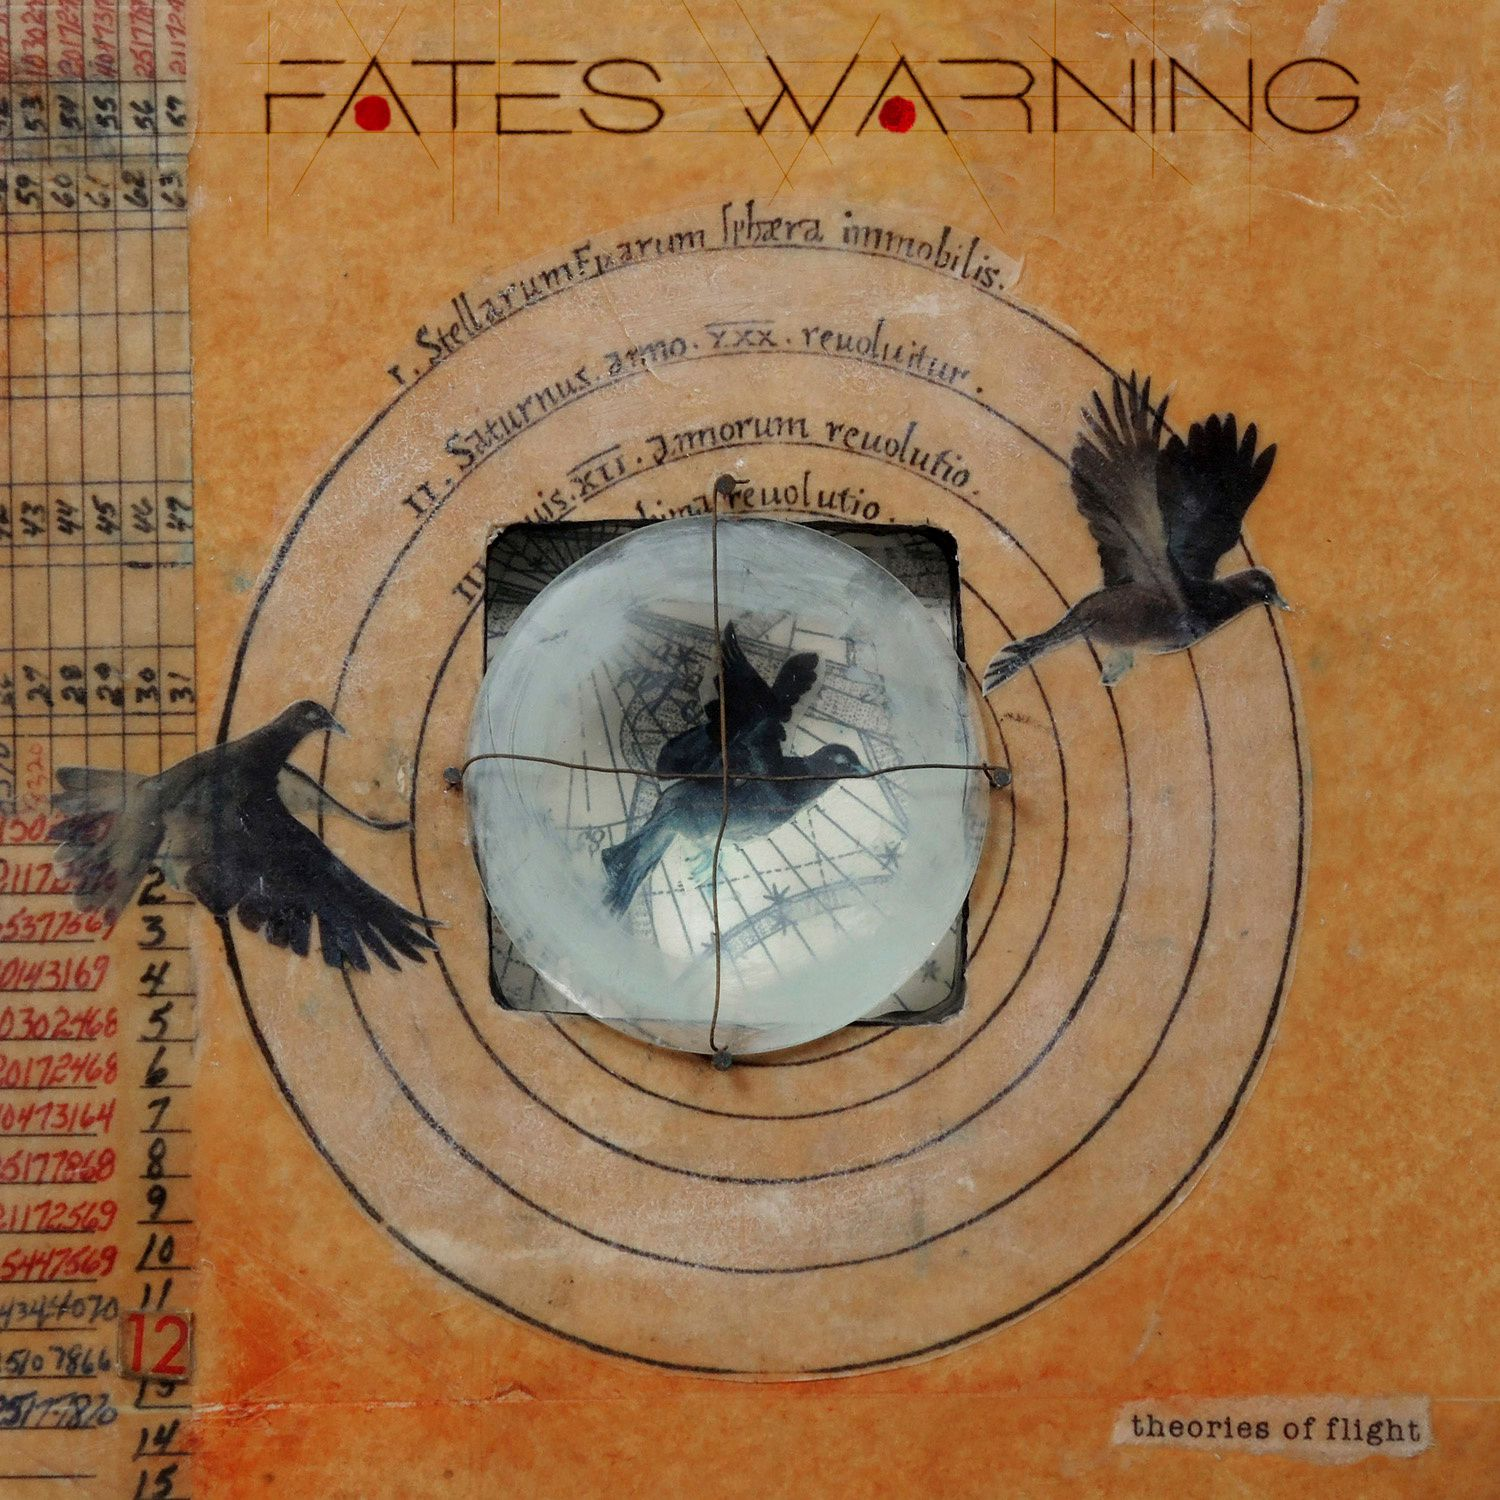 New FATES WARNING album in July